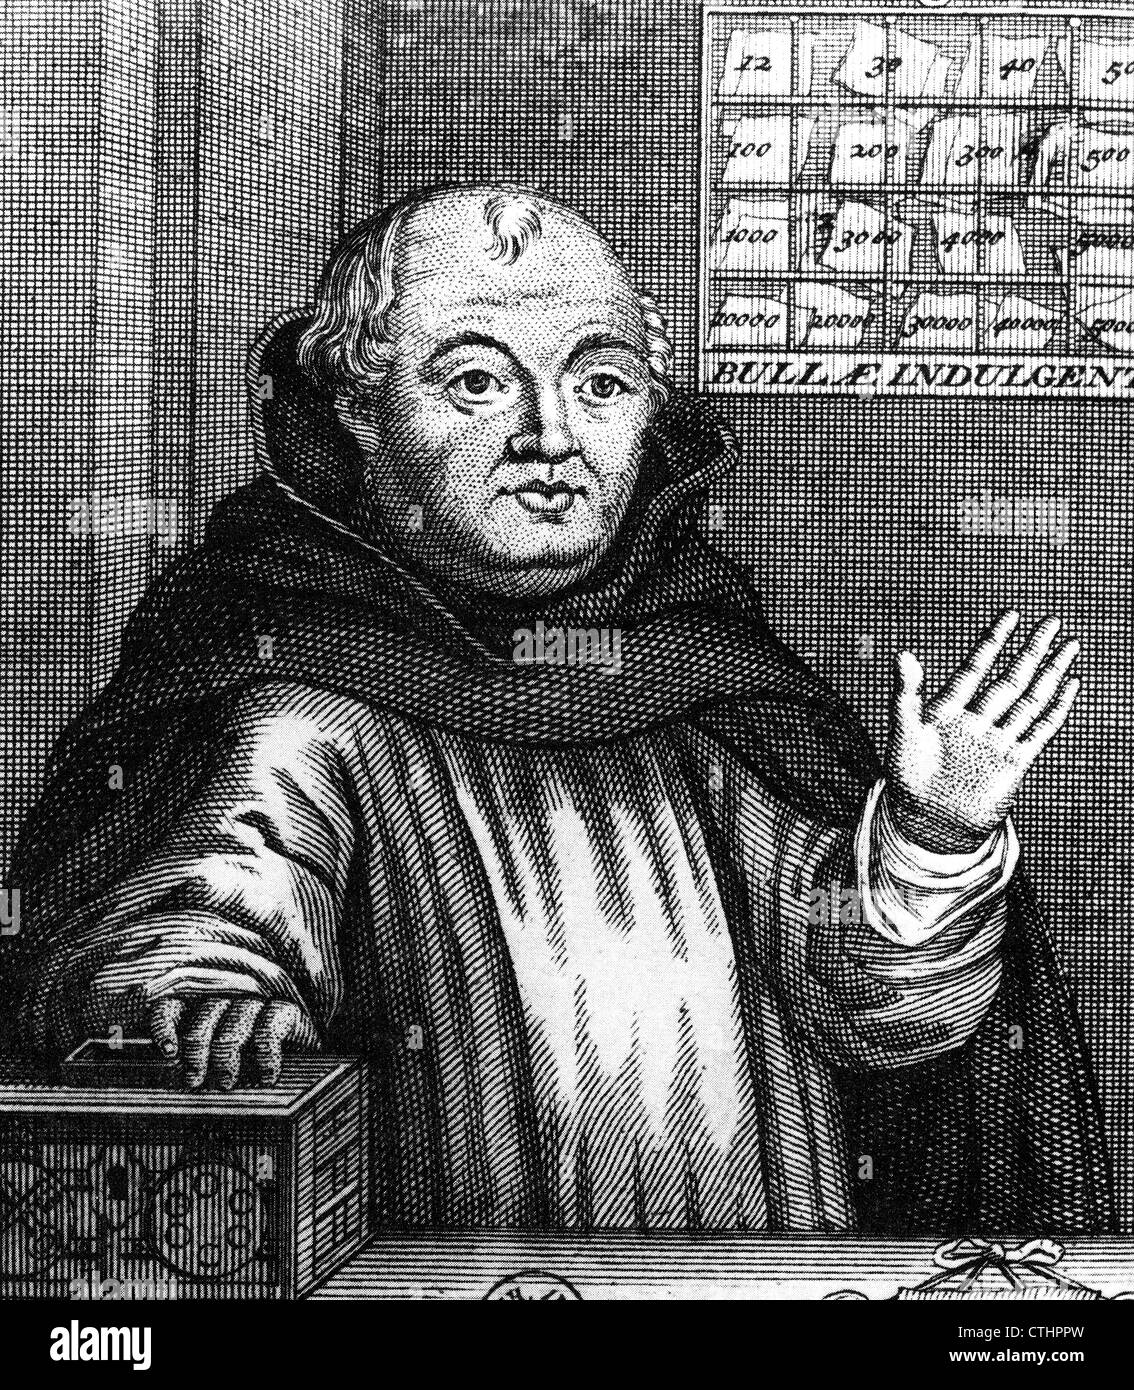 JOHANN TETZEL (1465-1519) German Dominican preacher responsible for the sale of indulgences in Germany - Stock Image